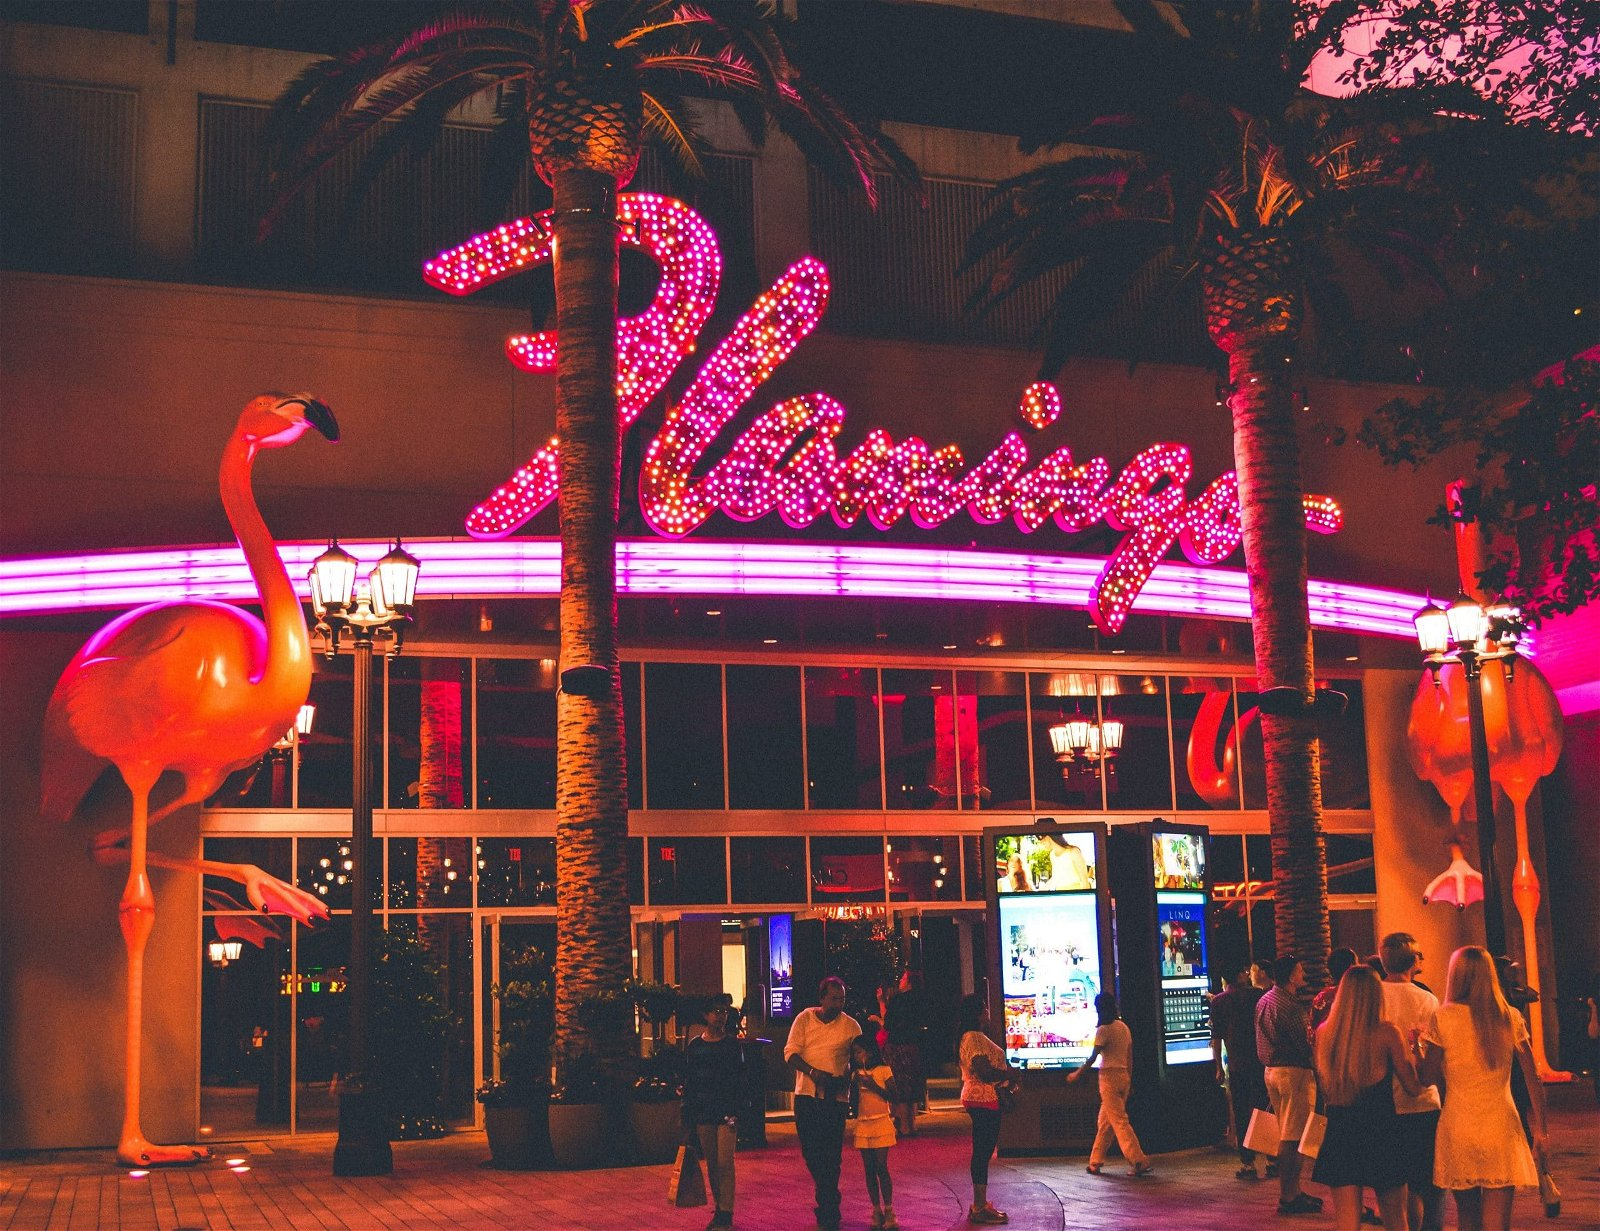 the oldest hotel on the las vegas strip is the flamingo